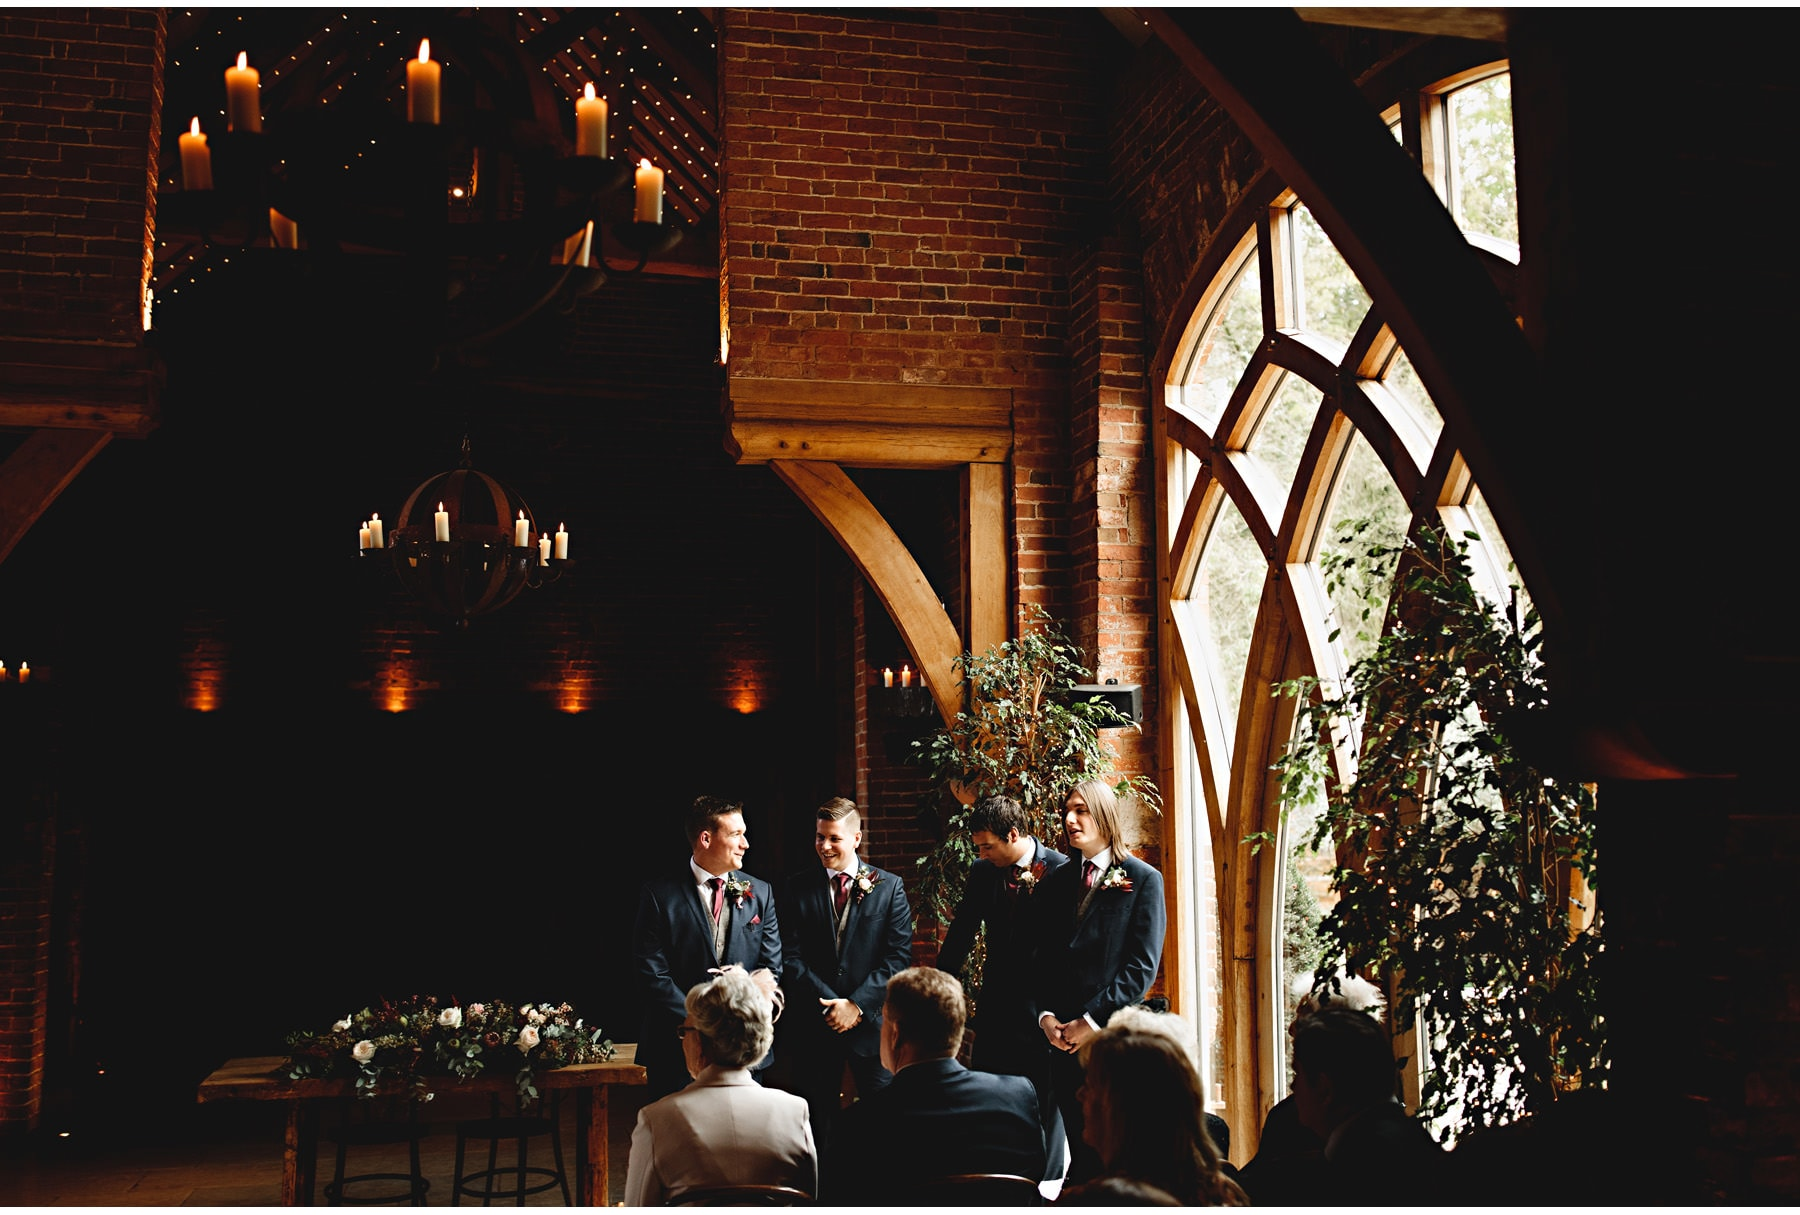 The wedding ceremony, the groom and best man standing in the light.